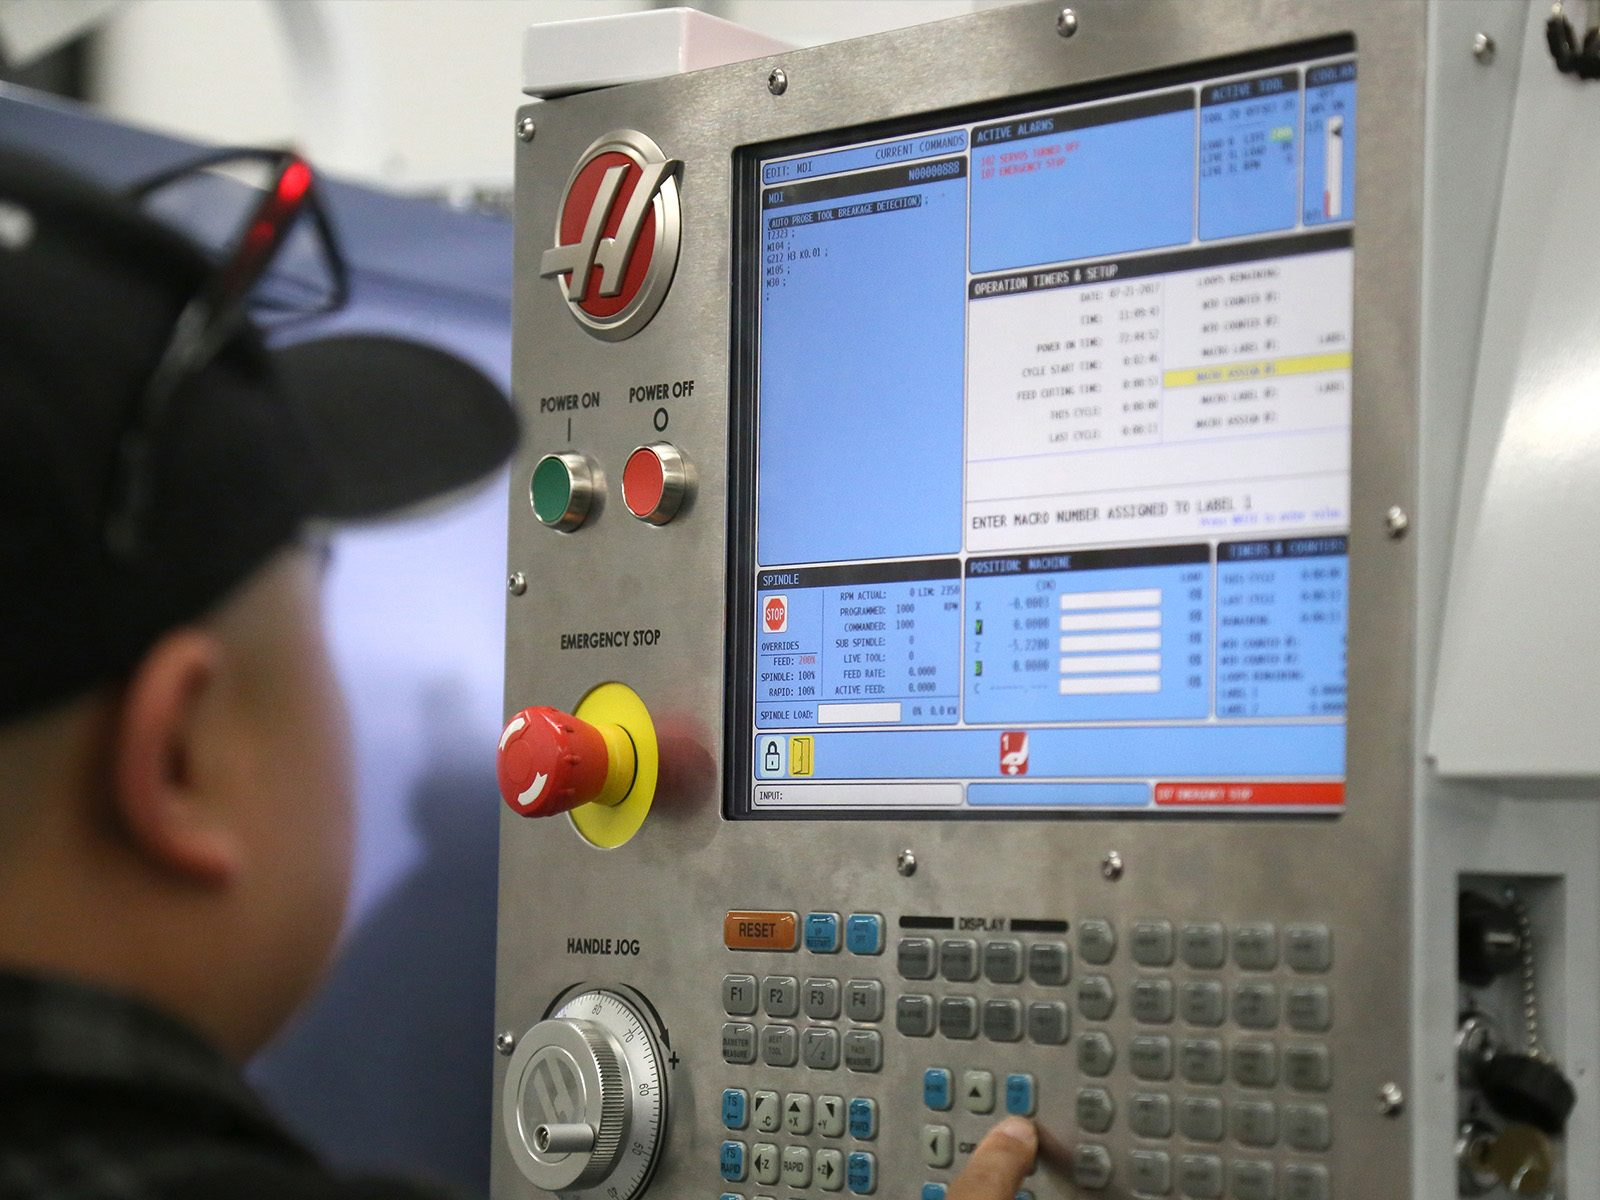 The Haas Control